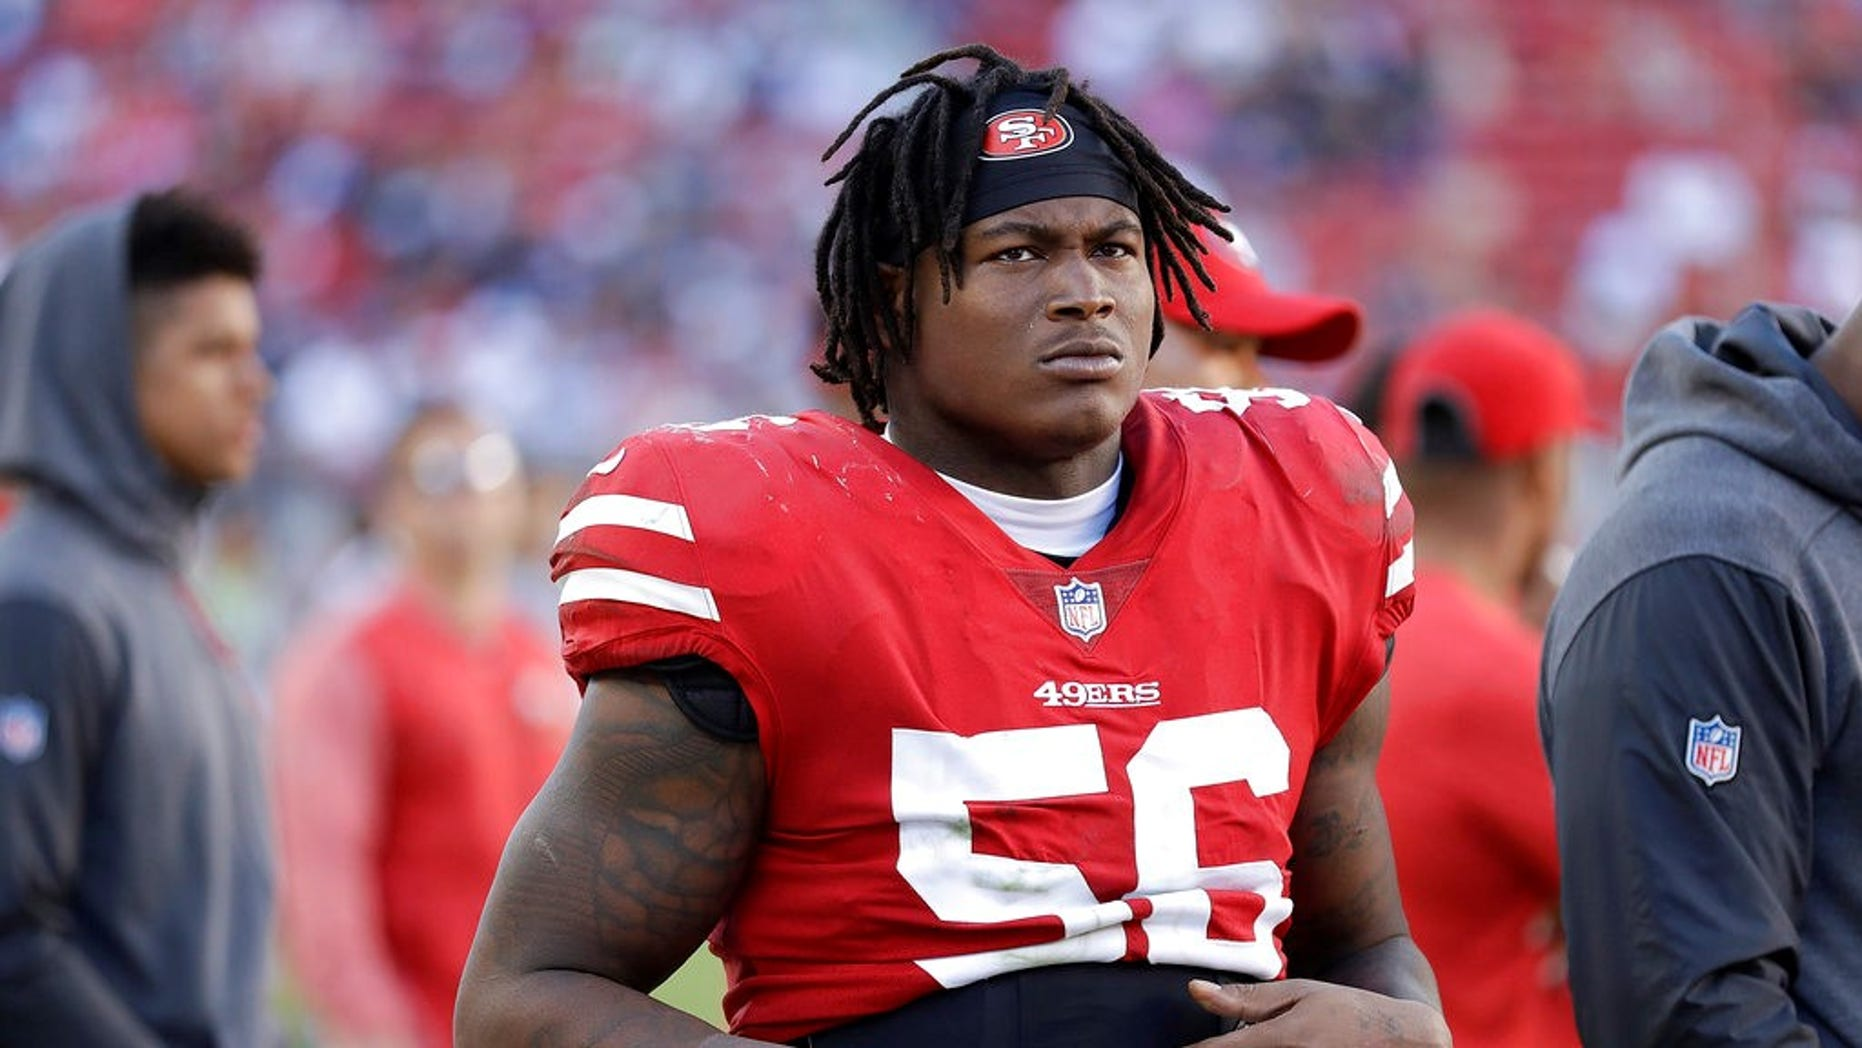 Reuben Foster was charged after an altercation involving his live-in girlfriend in California.